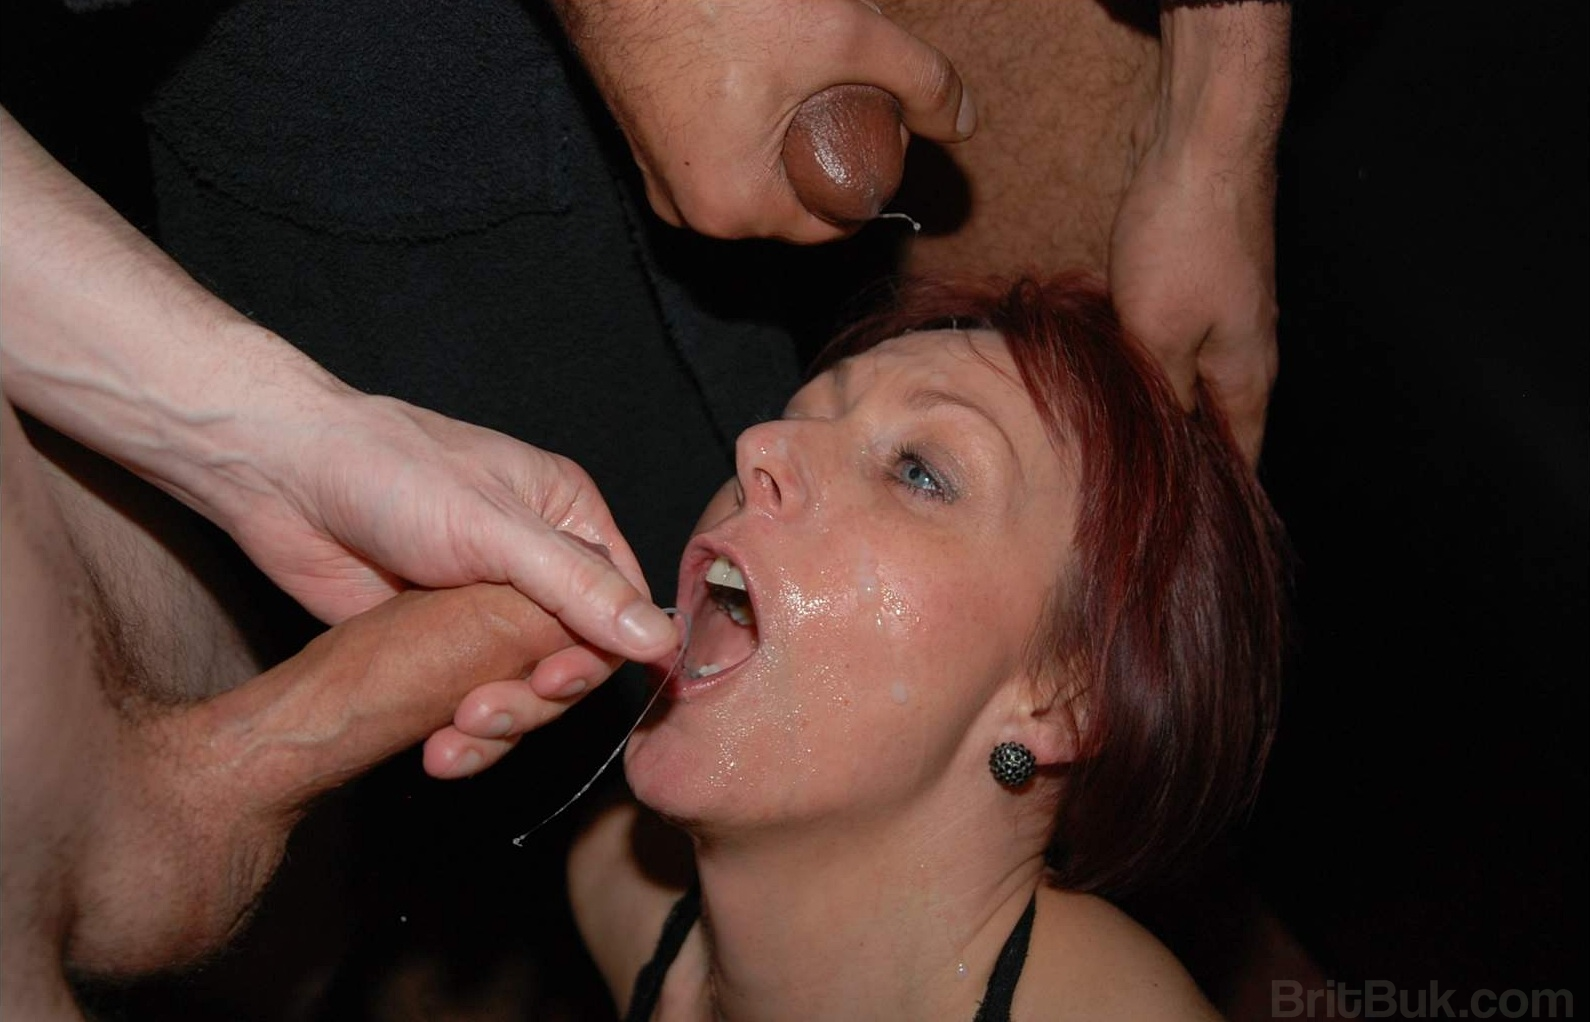 final, sorry, but pantyhose white lick dick and interracial think, that you